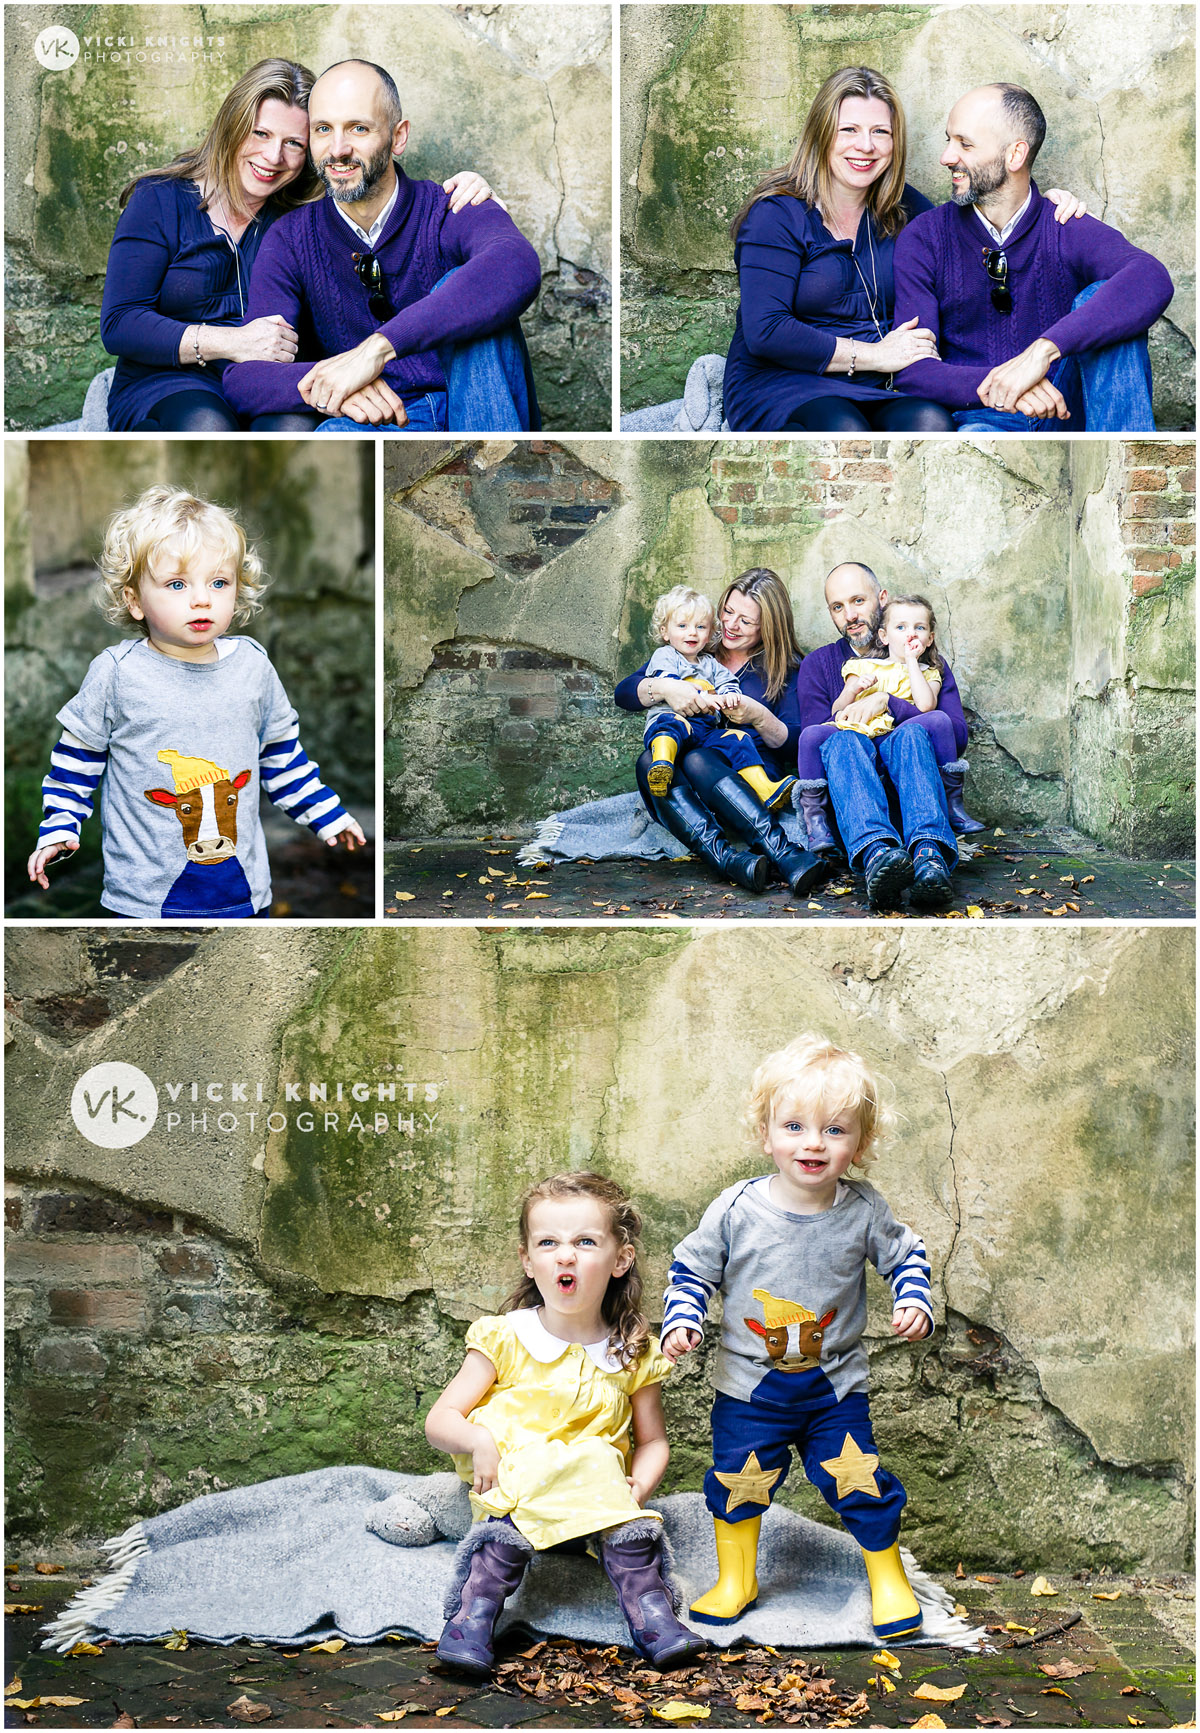 cobham-family-photographer-3